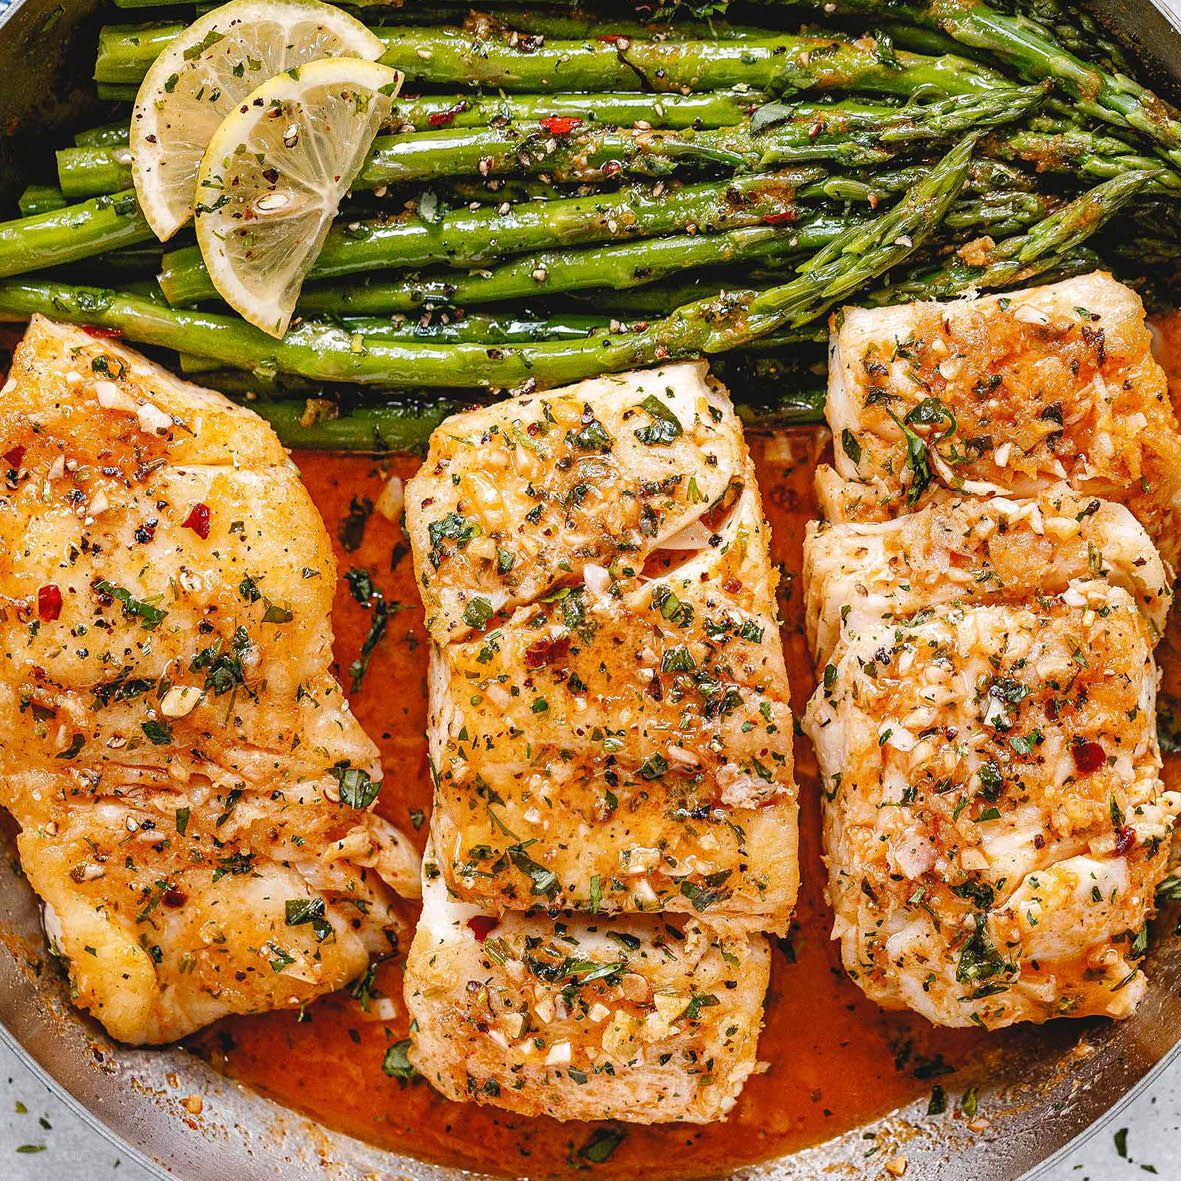 Pink_Ling_with_Garlic_Butter_and_Lemony_Asparagus.jpg